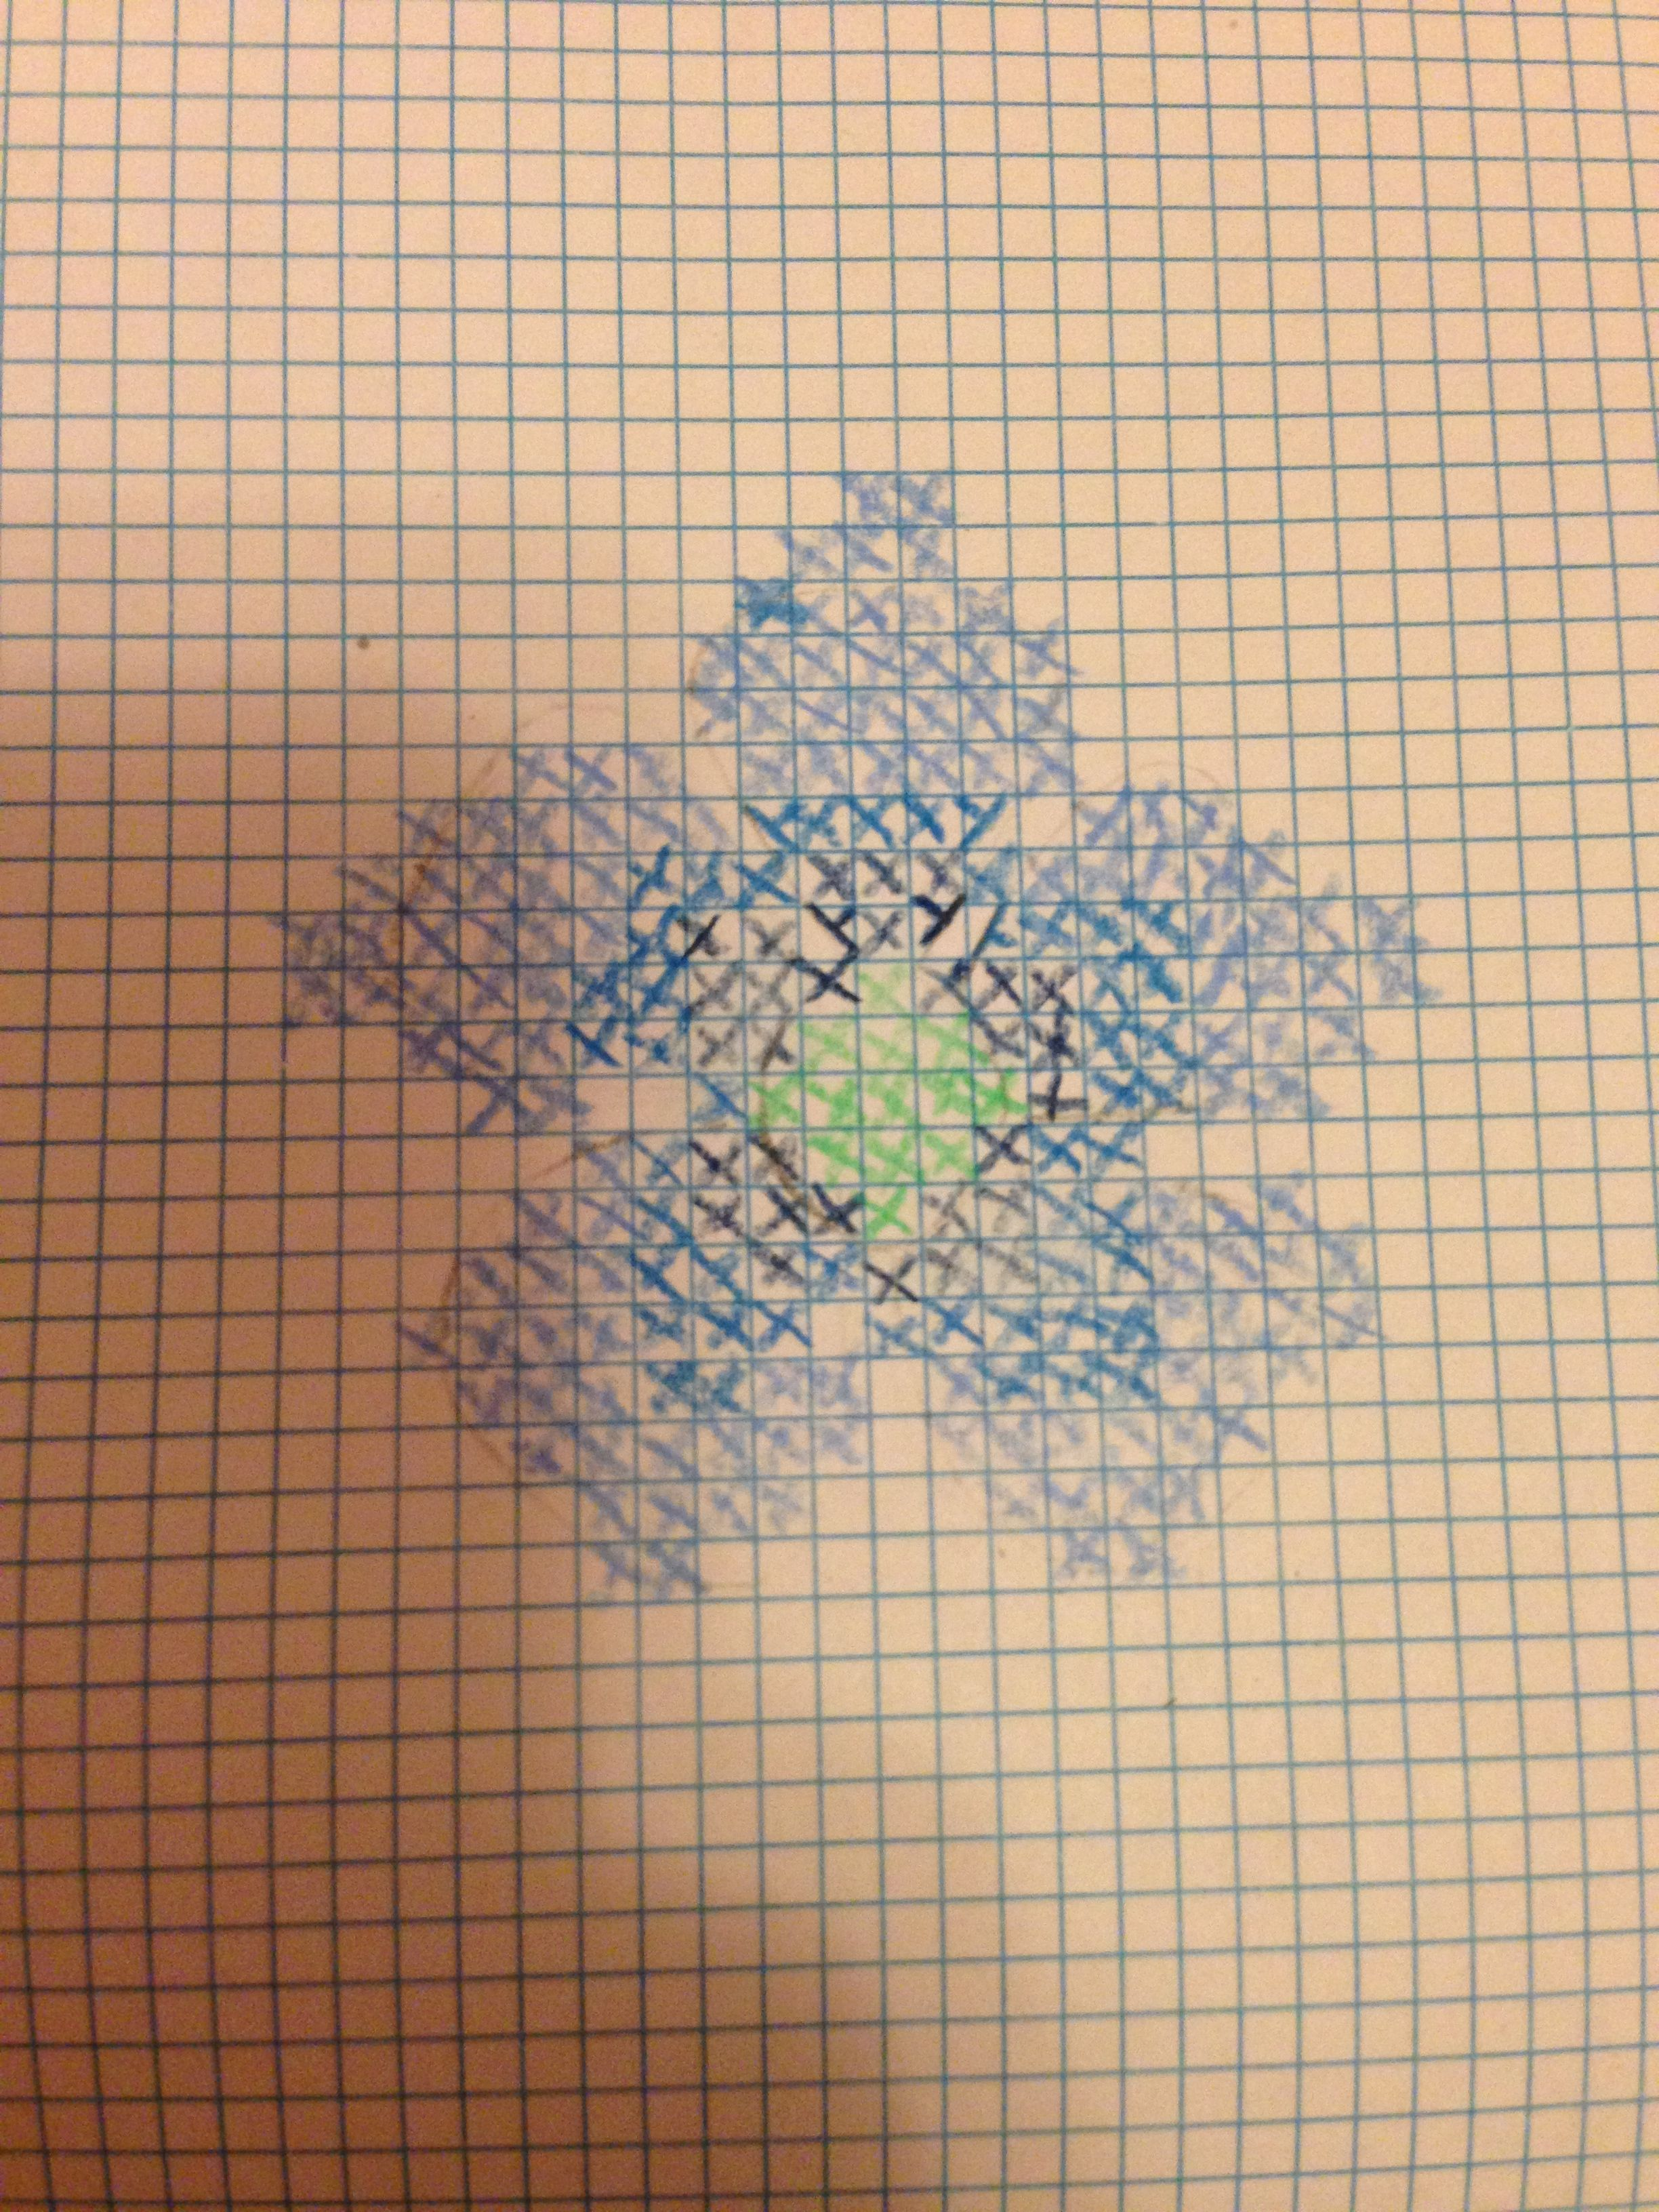 How To Make Your Own Cross Stitch Pattern Interesting Inspiration Design